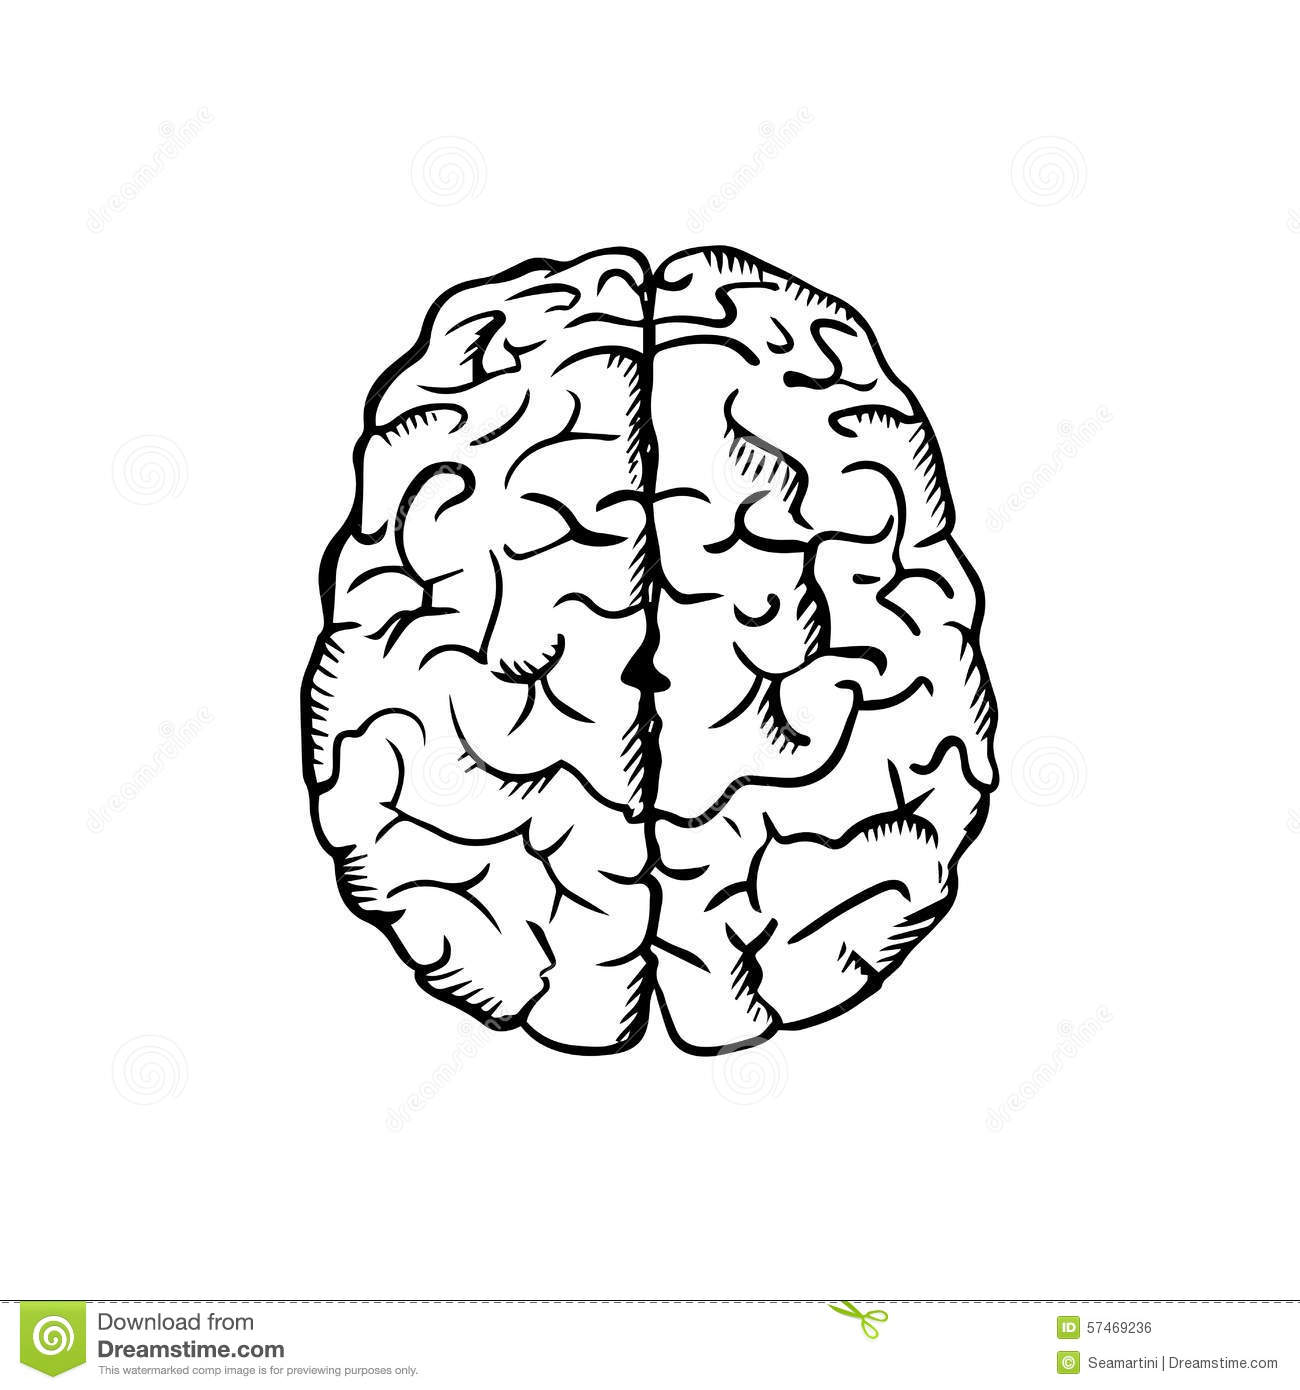 human brain sketch in ouline style stock vector